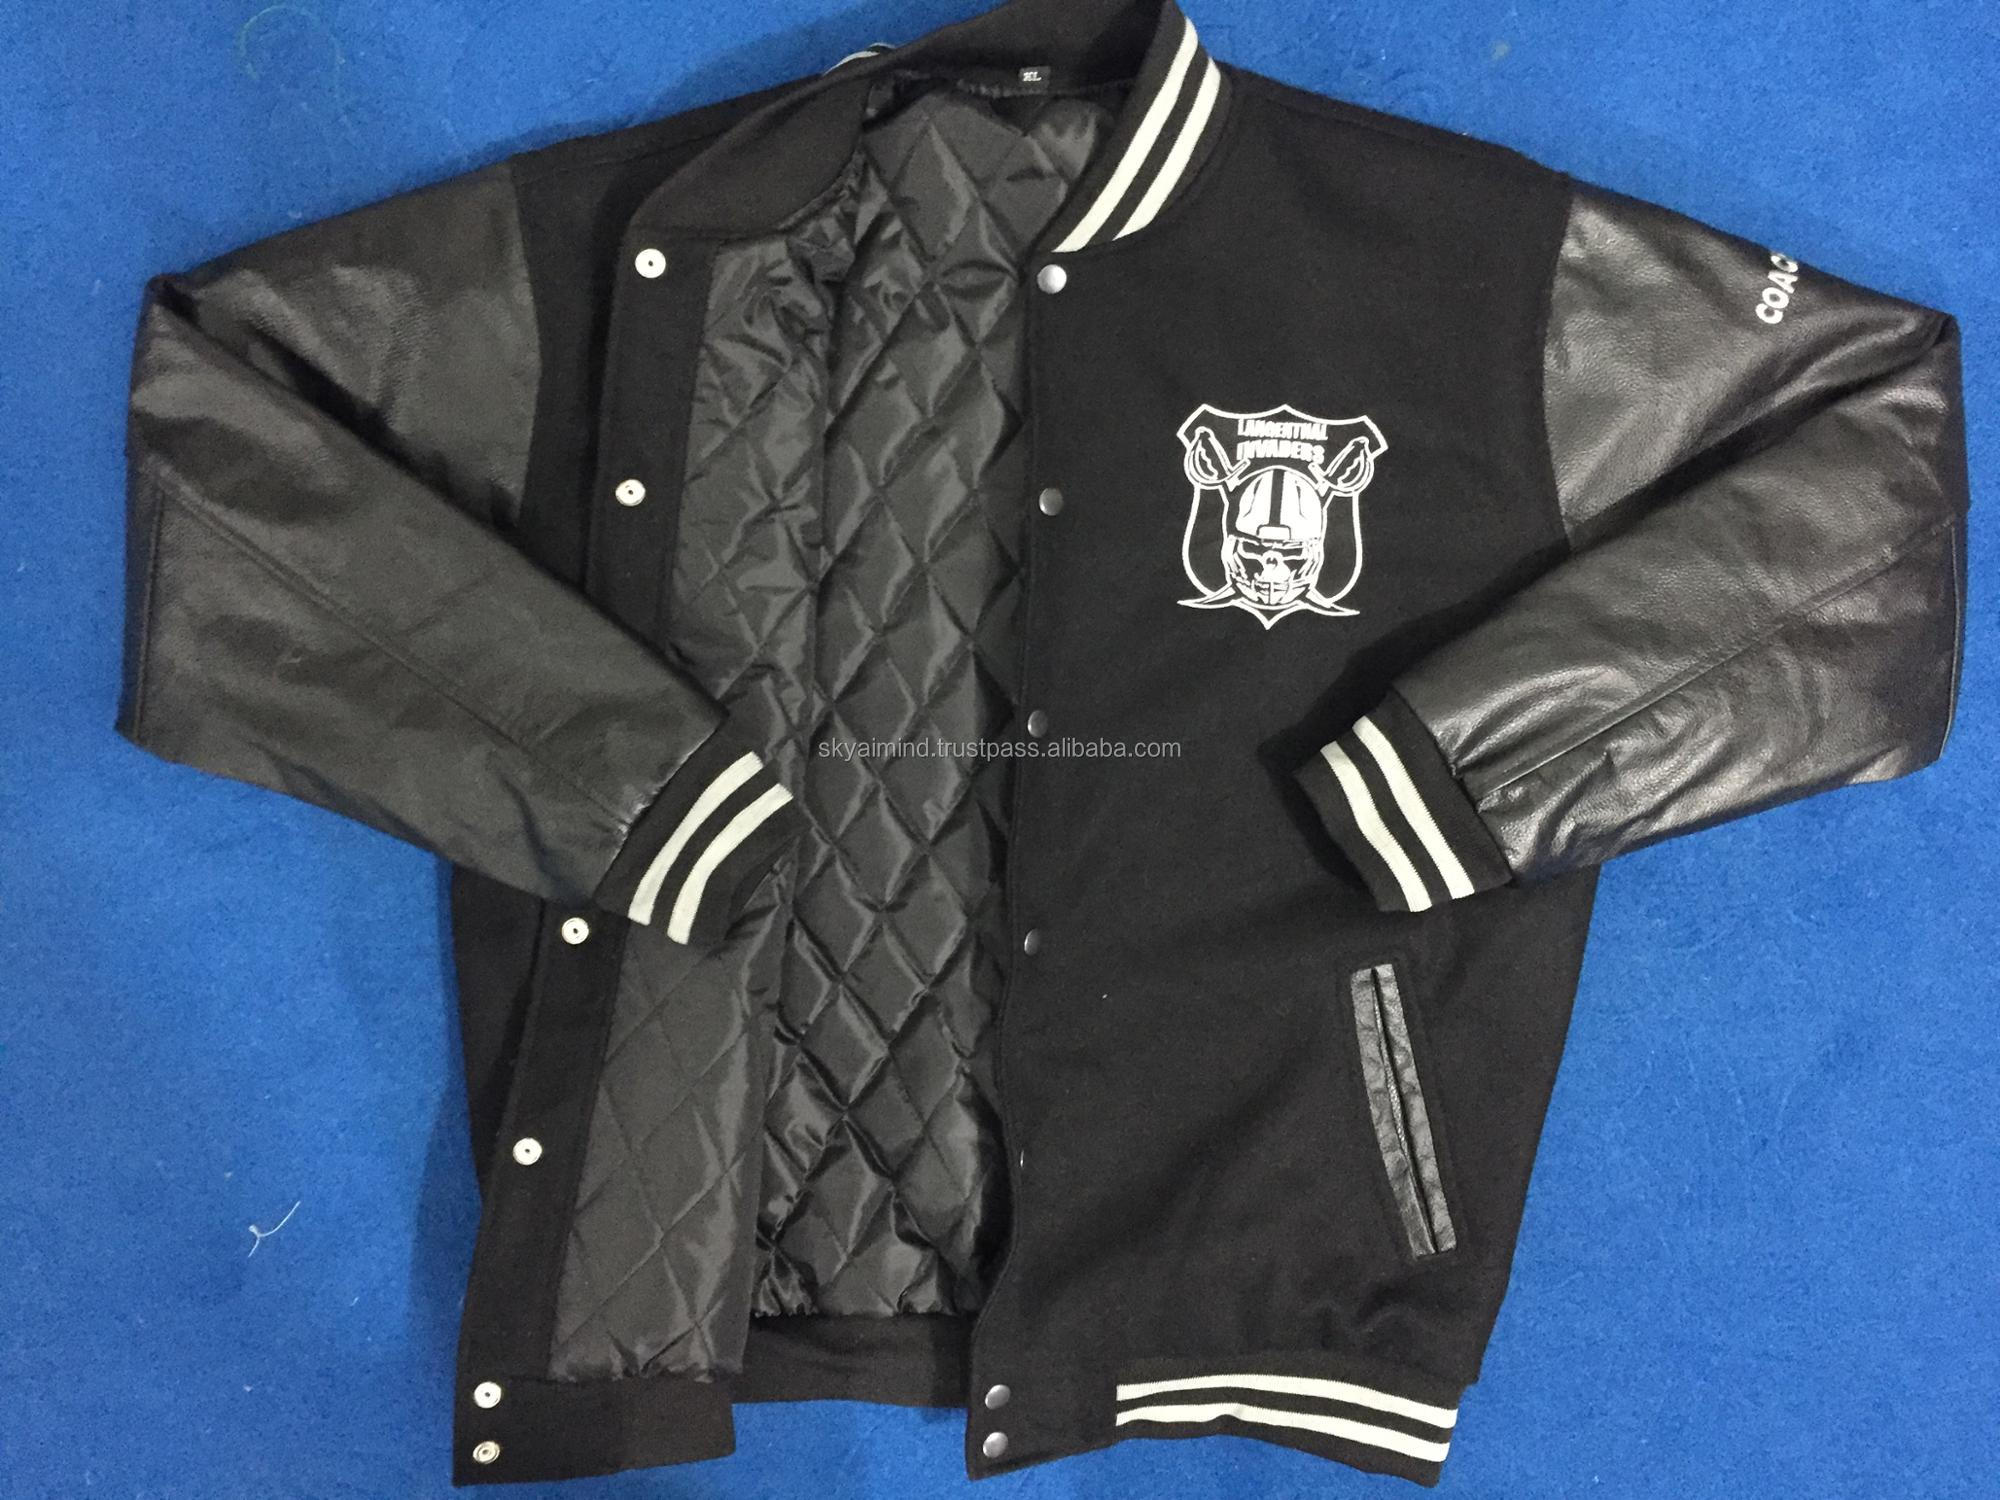 baseball cotton fleece varsity jackets,printed baseball fleece jackets,high quality baseball stylish varsity jackets